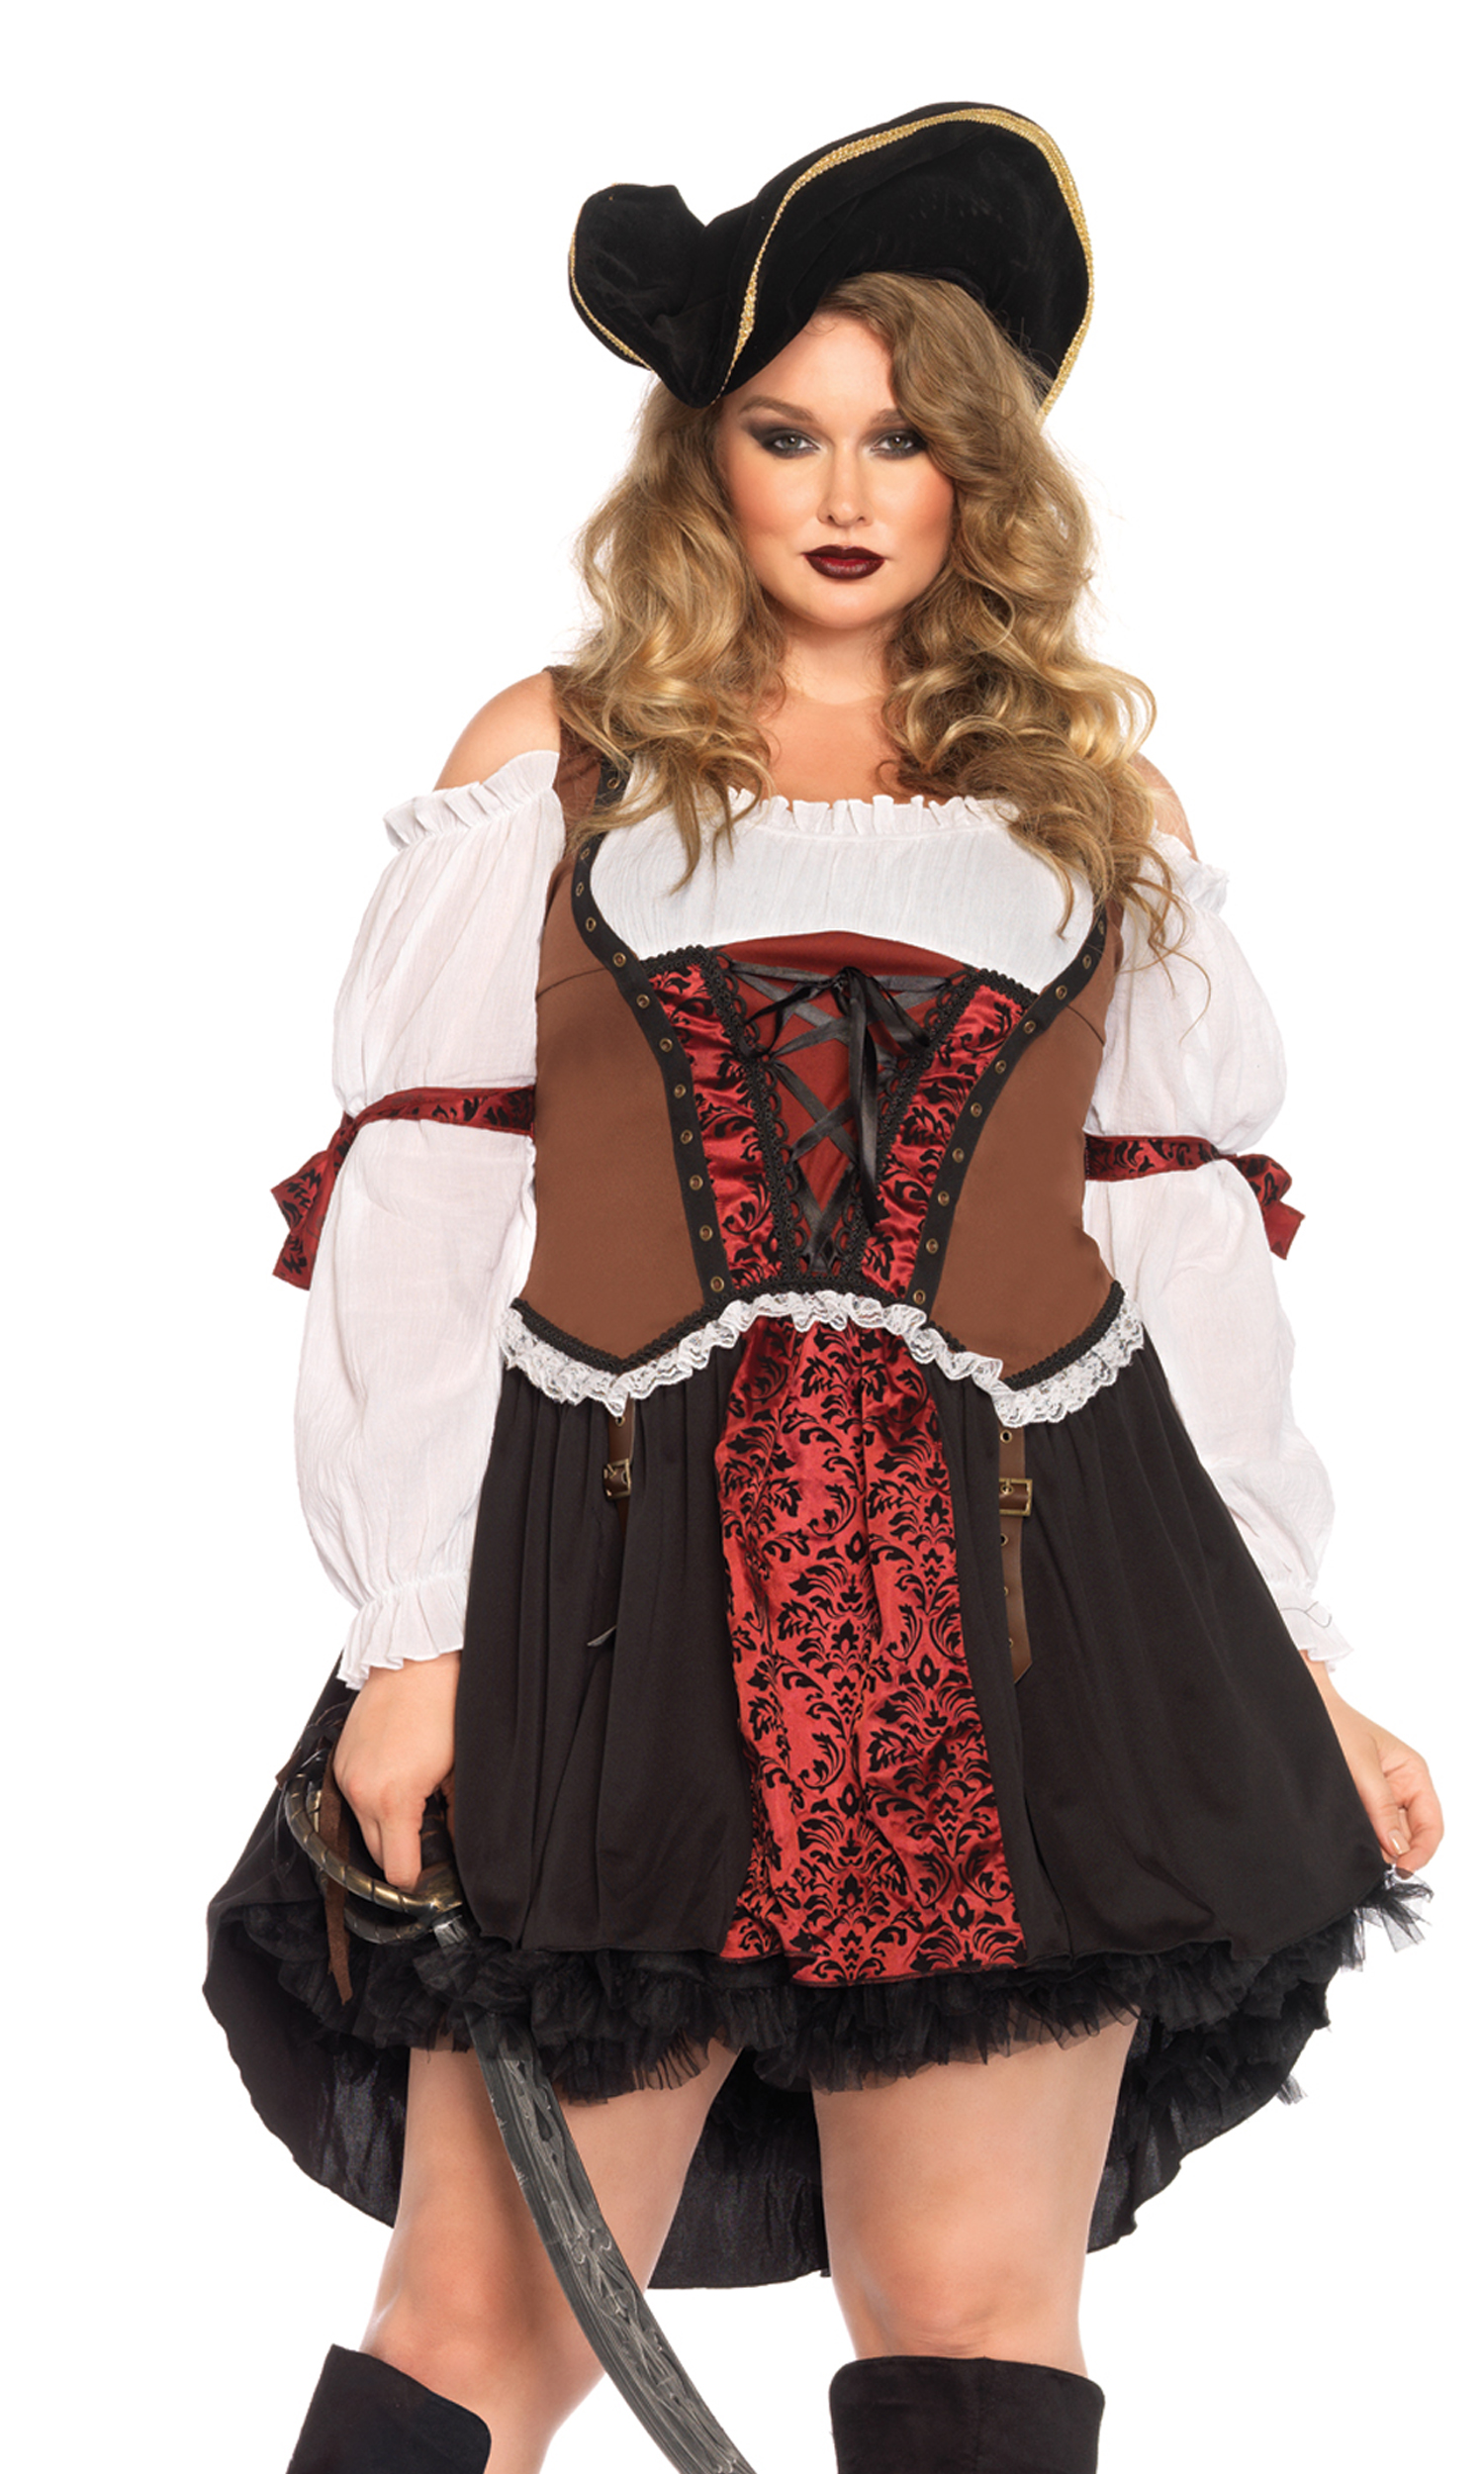 sc 1 st  ForPlay Catalog & Plus Size Costumes | ForPlay